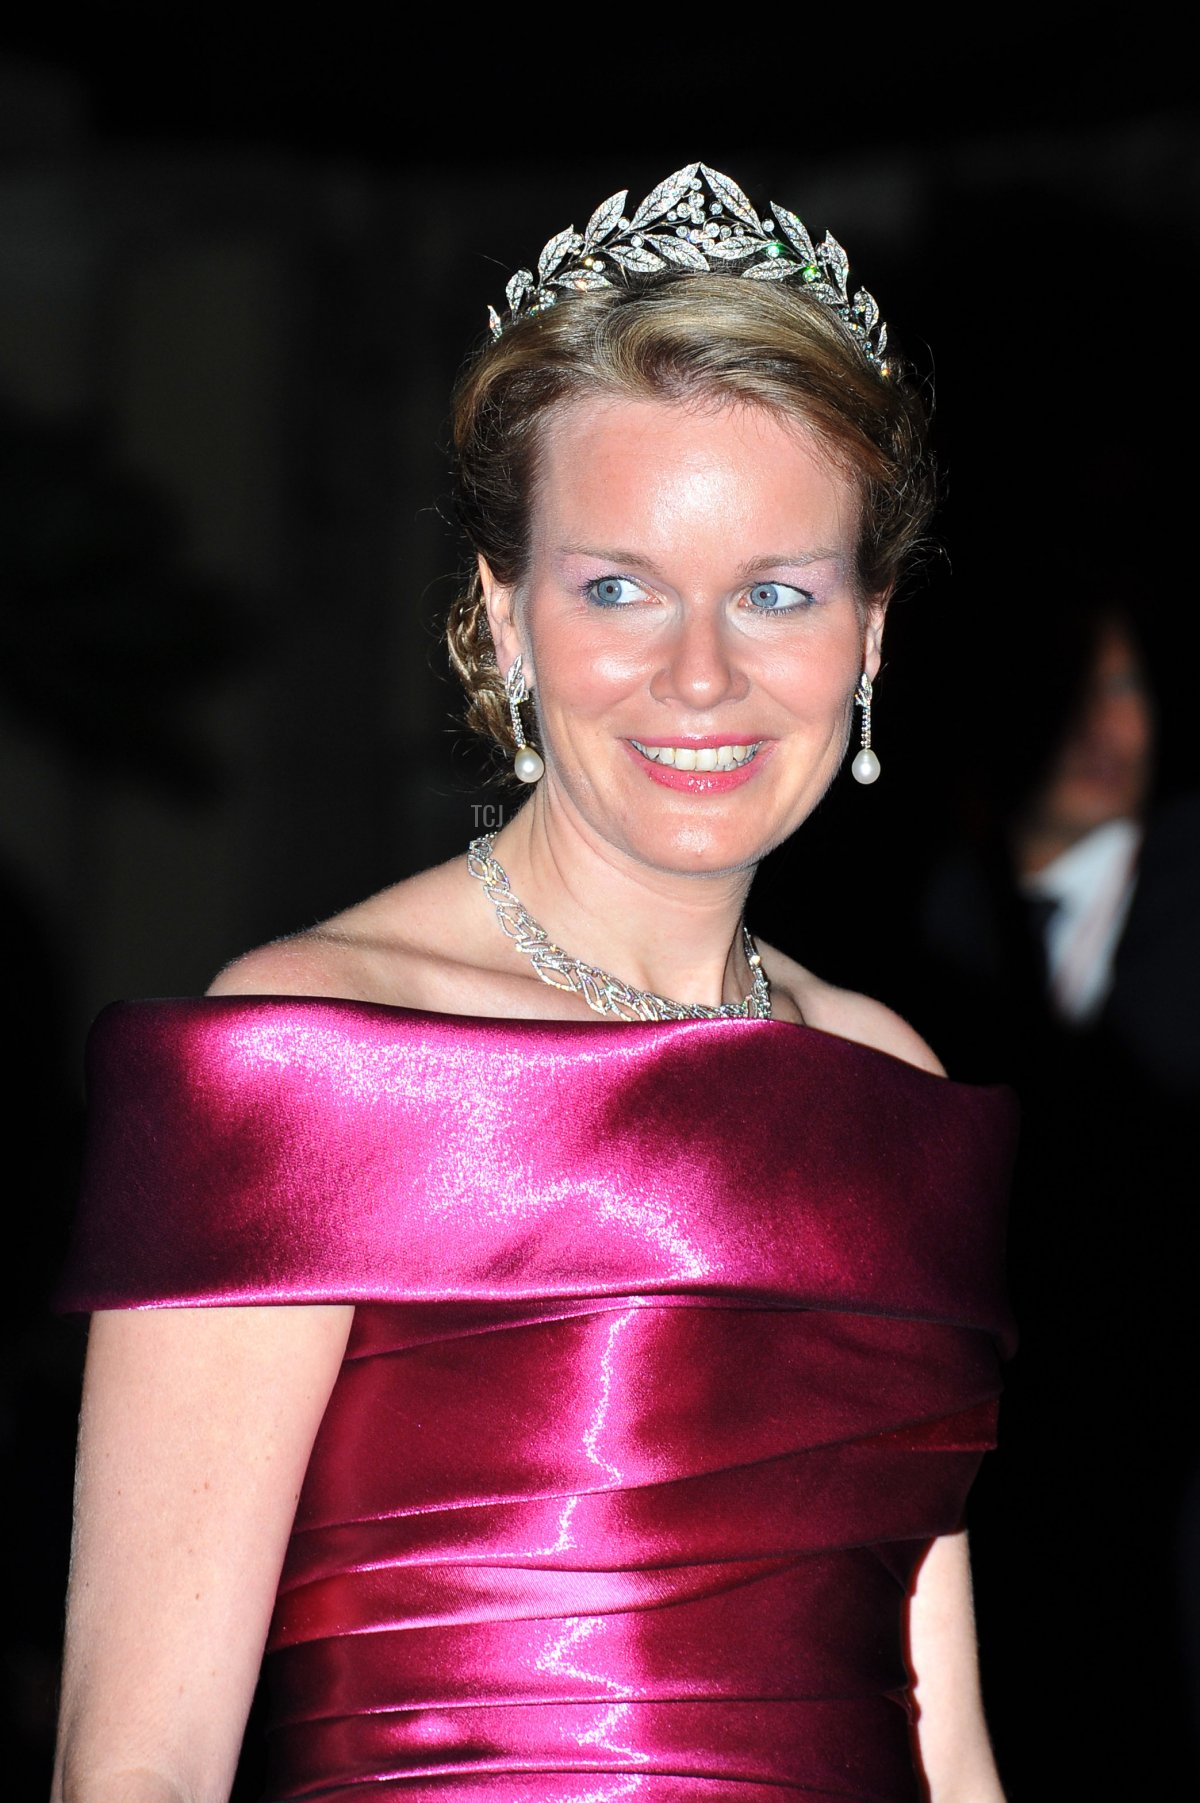 Crown Princess Mathilde attends a dinner at Opera terraces after the religious wedding ceremony on July 2, 2011 in Monaco